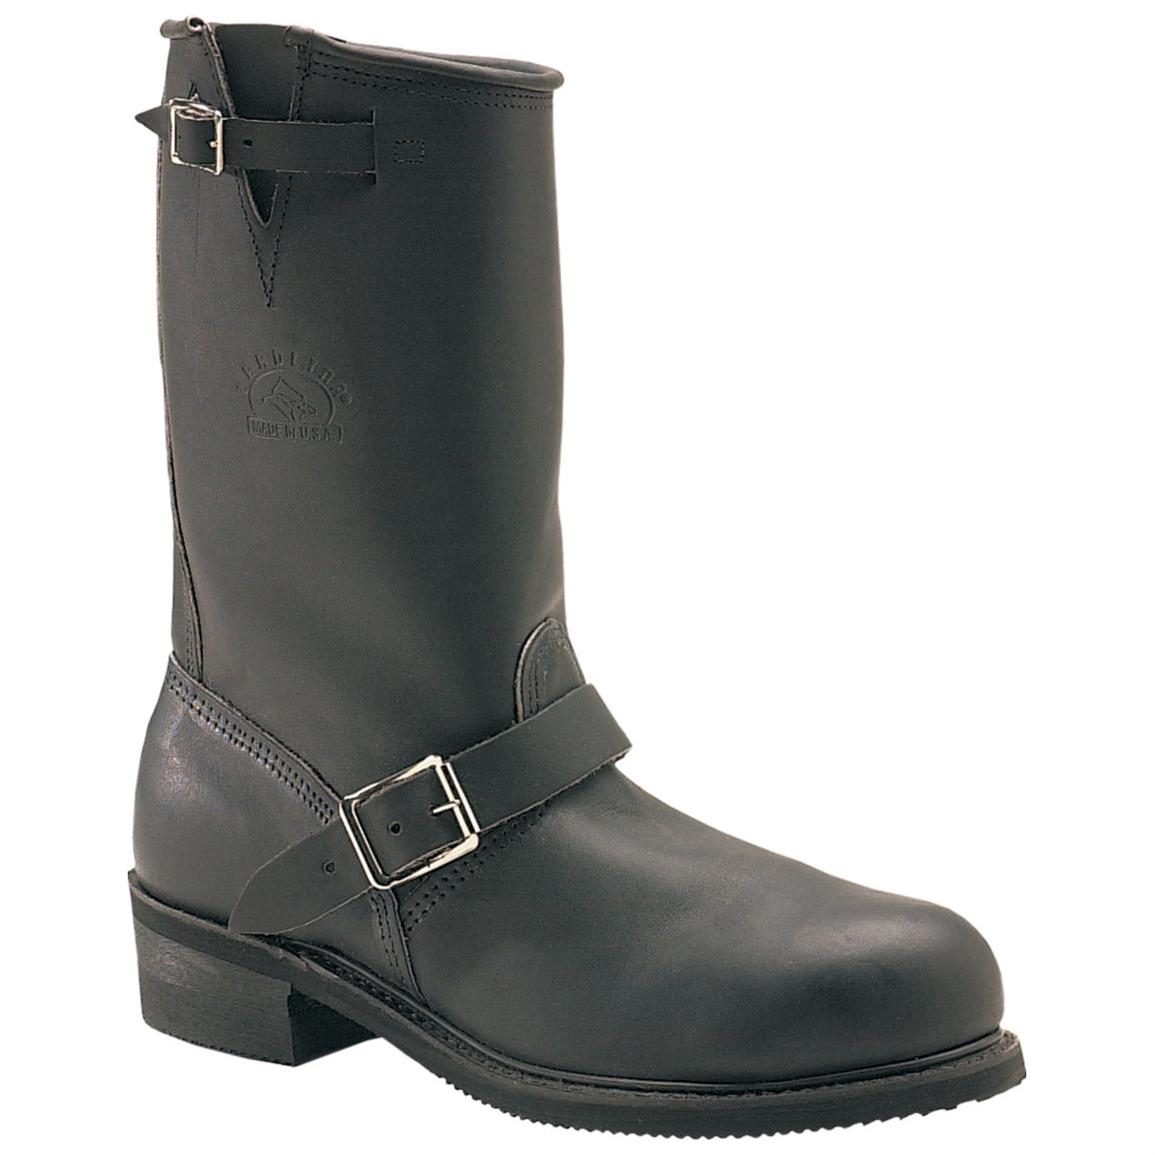 Mens Engineer Boots G9gZ8jmf